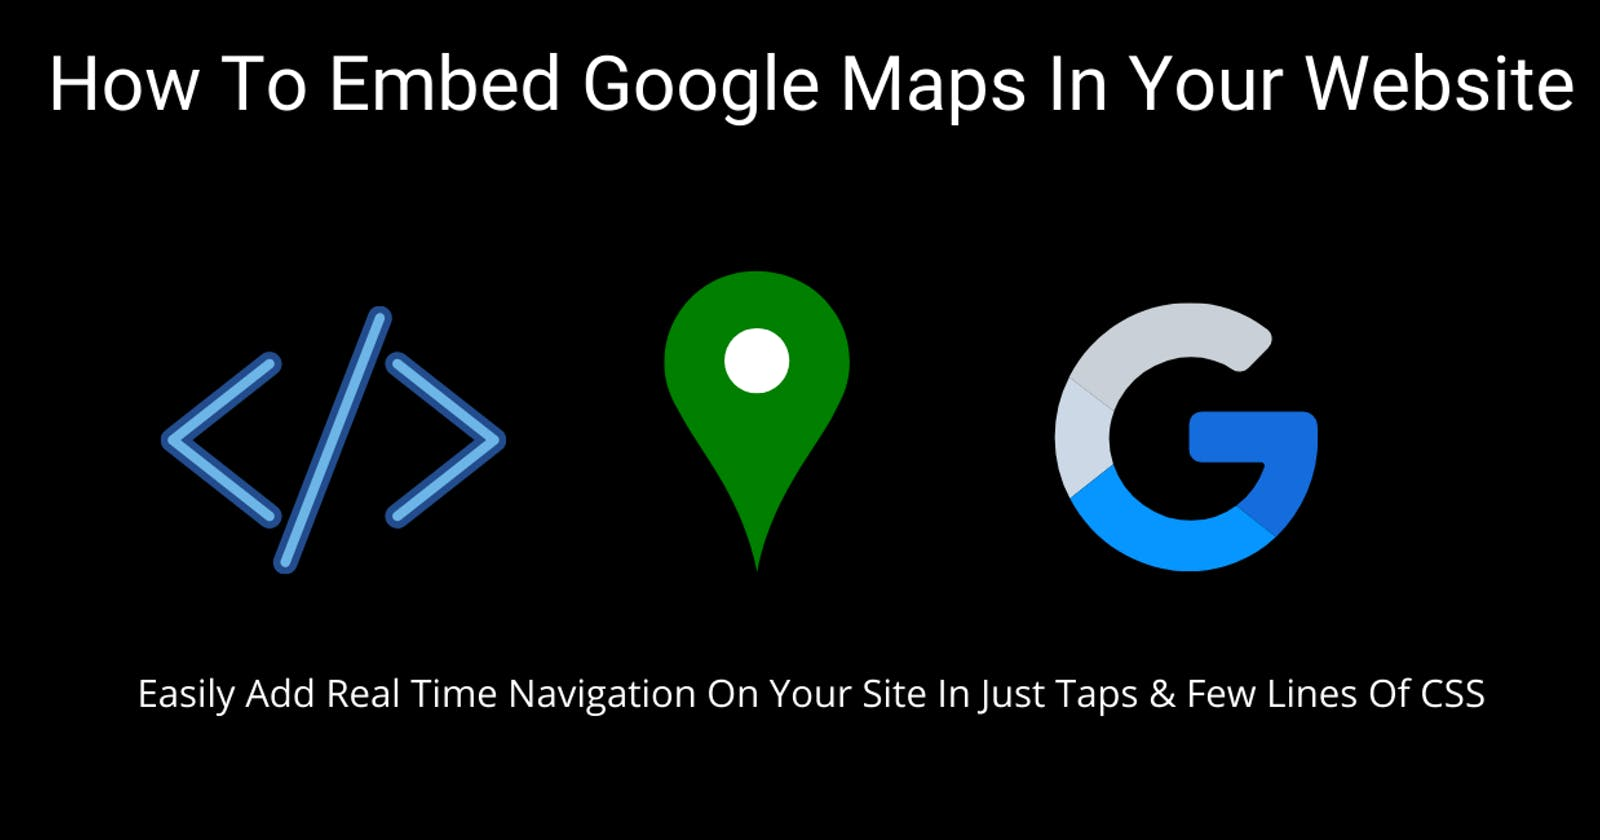 How To Embed Google Maps In Your Website